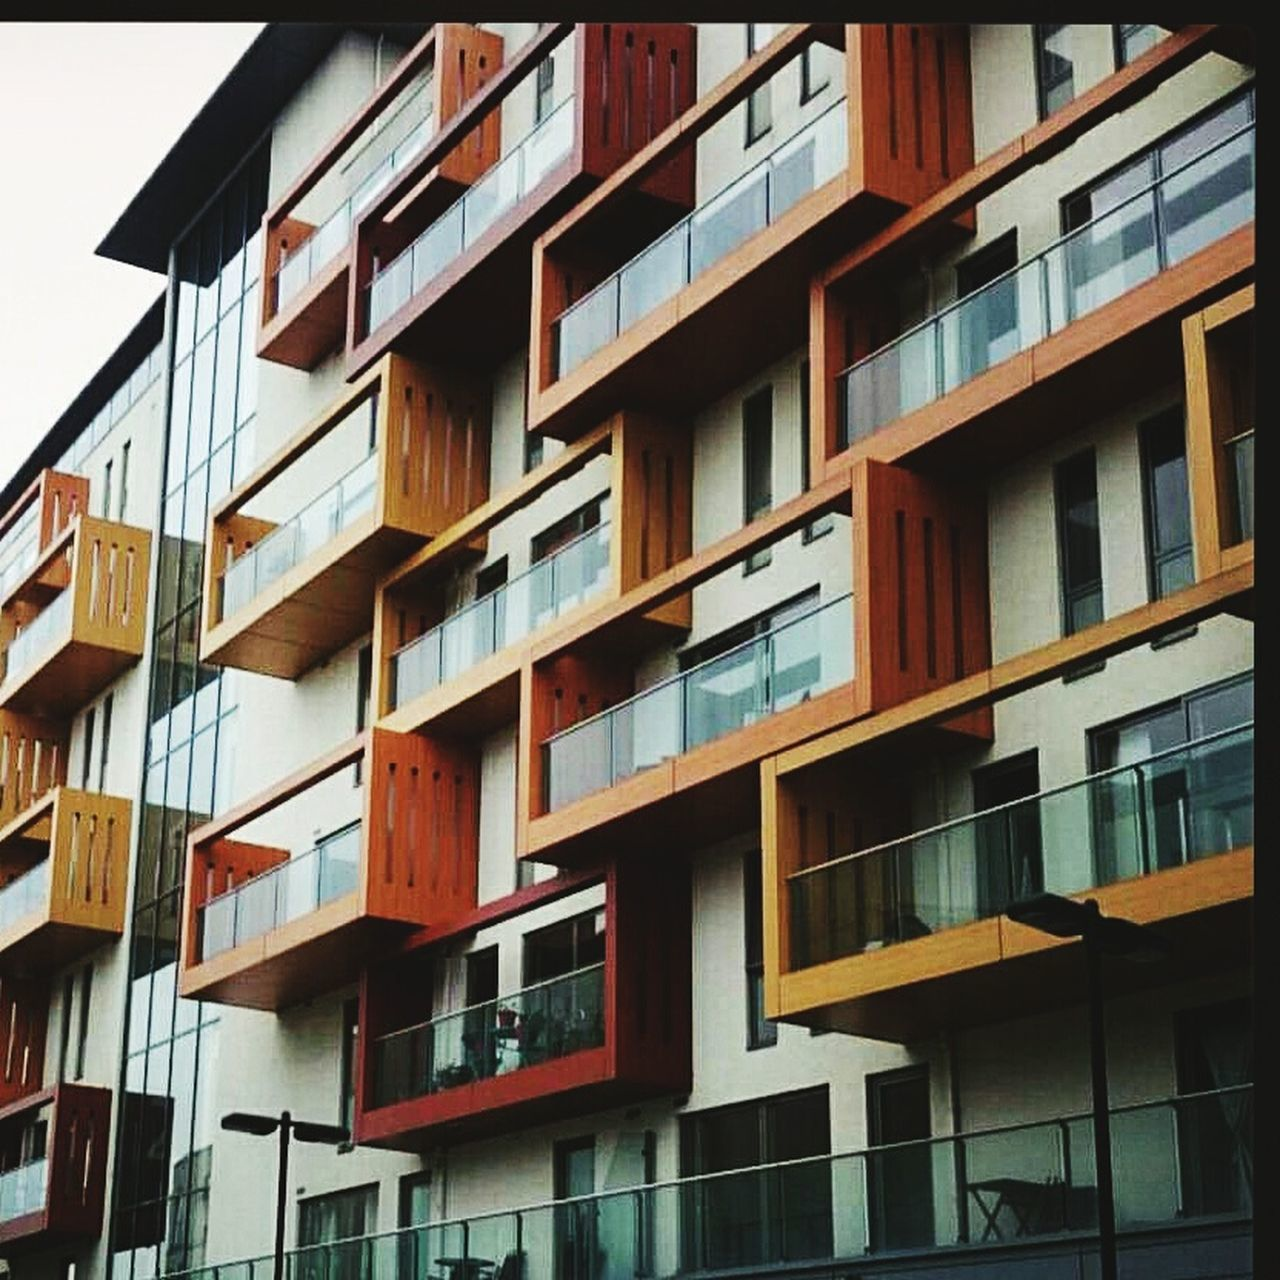 Architecture Building Exterior Residential Building Modern Exterior Architectural Feature First Eyeem Photo Kennington